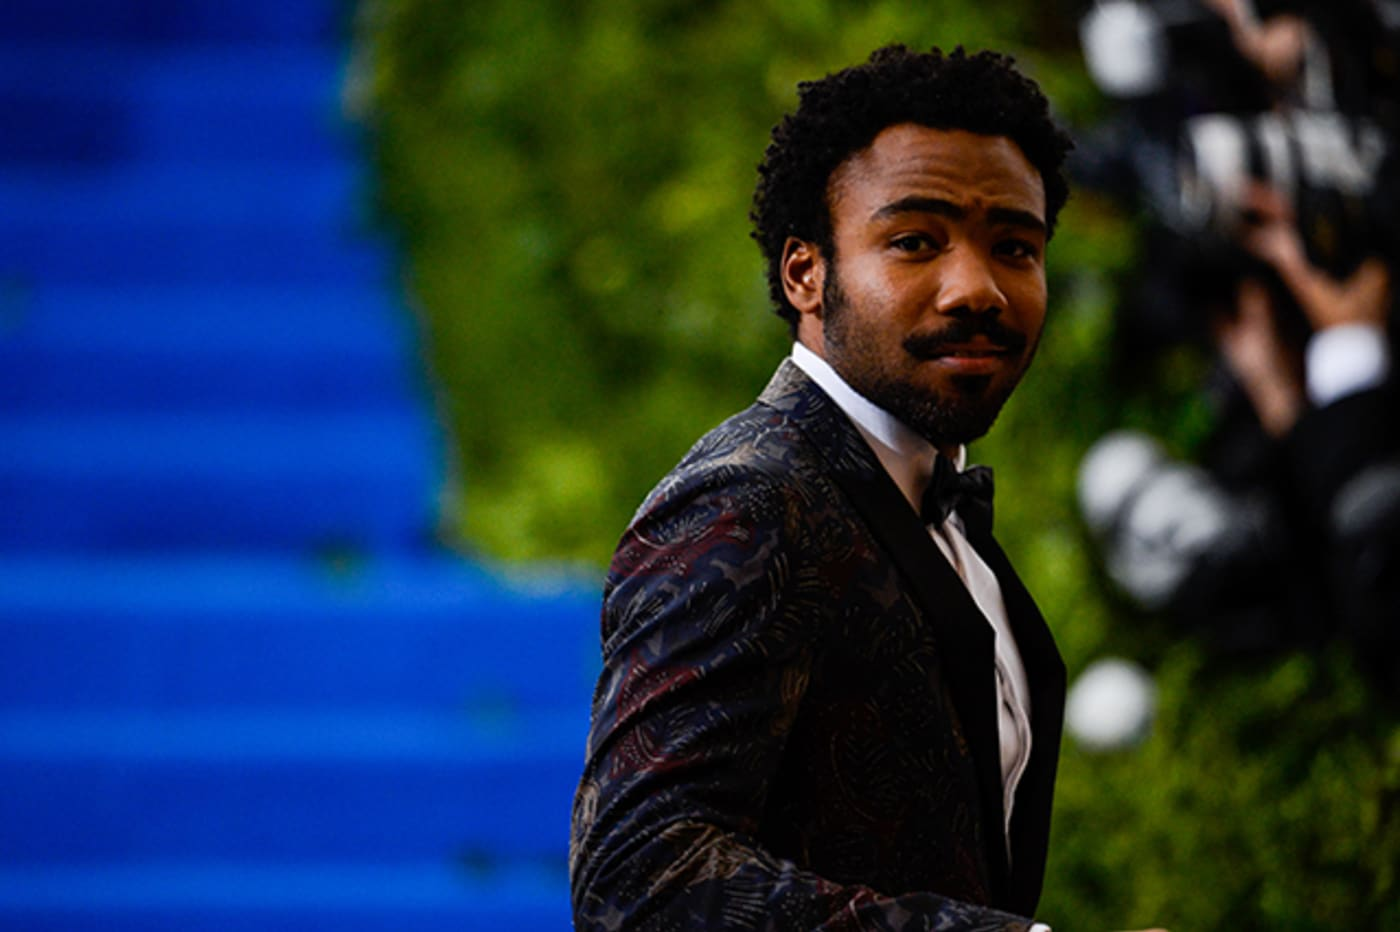 Donald Glover at the 2017 Met Gala